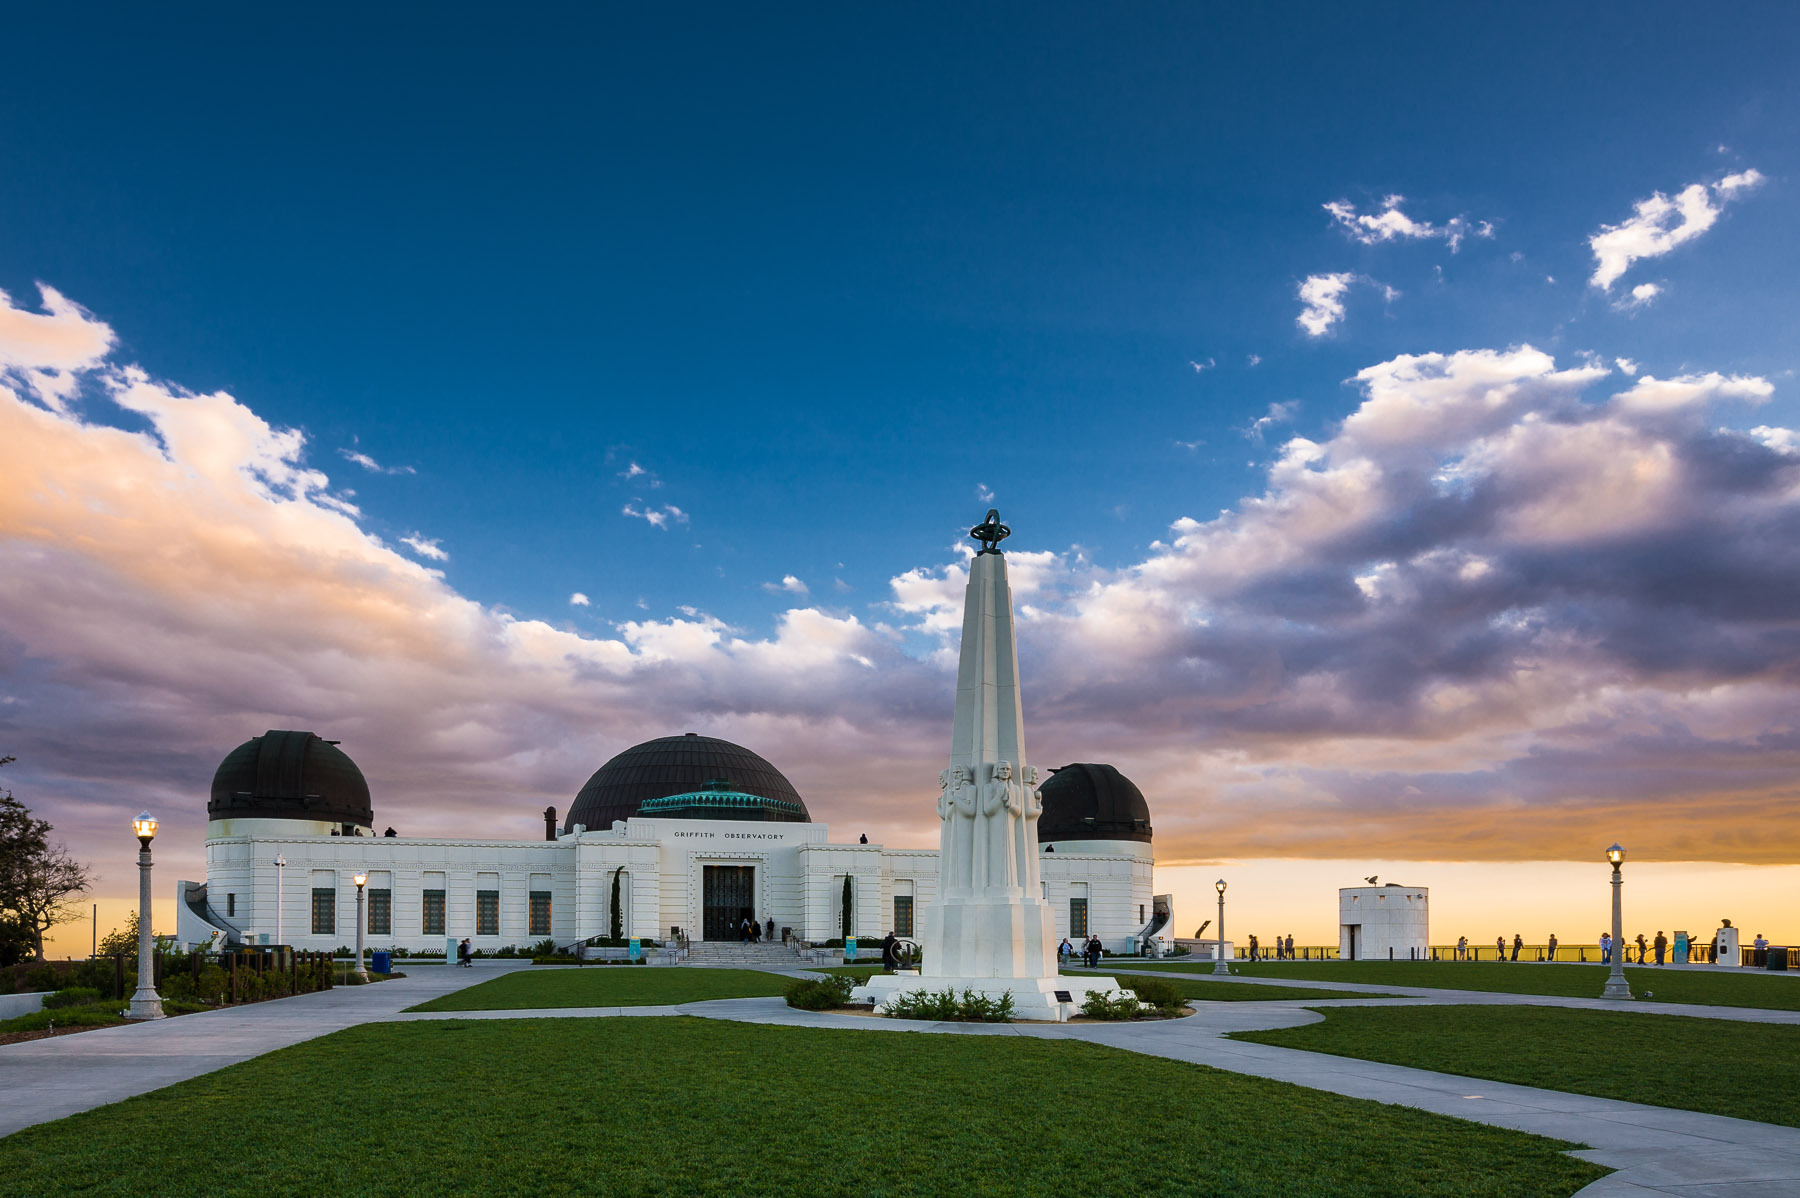 Griffith-Observatory-Los-Angeles.jpg